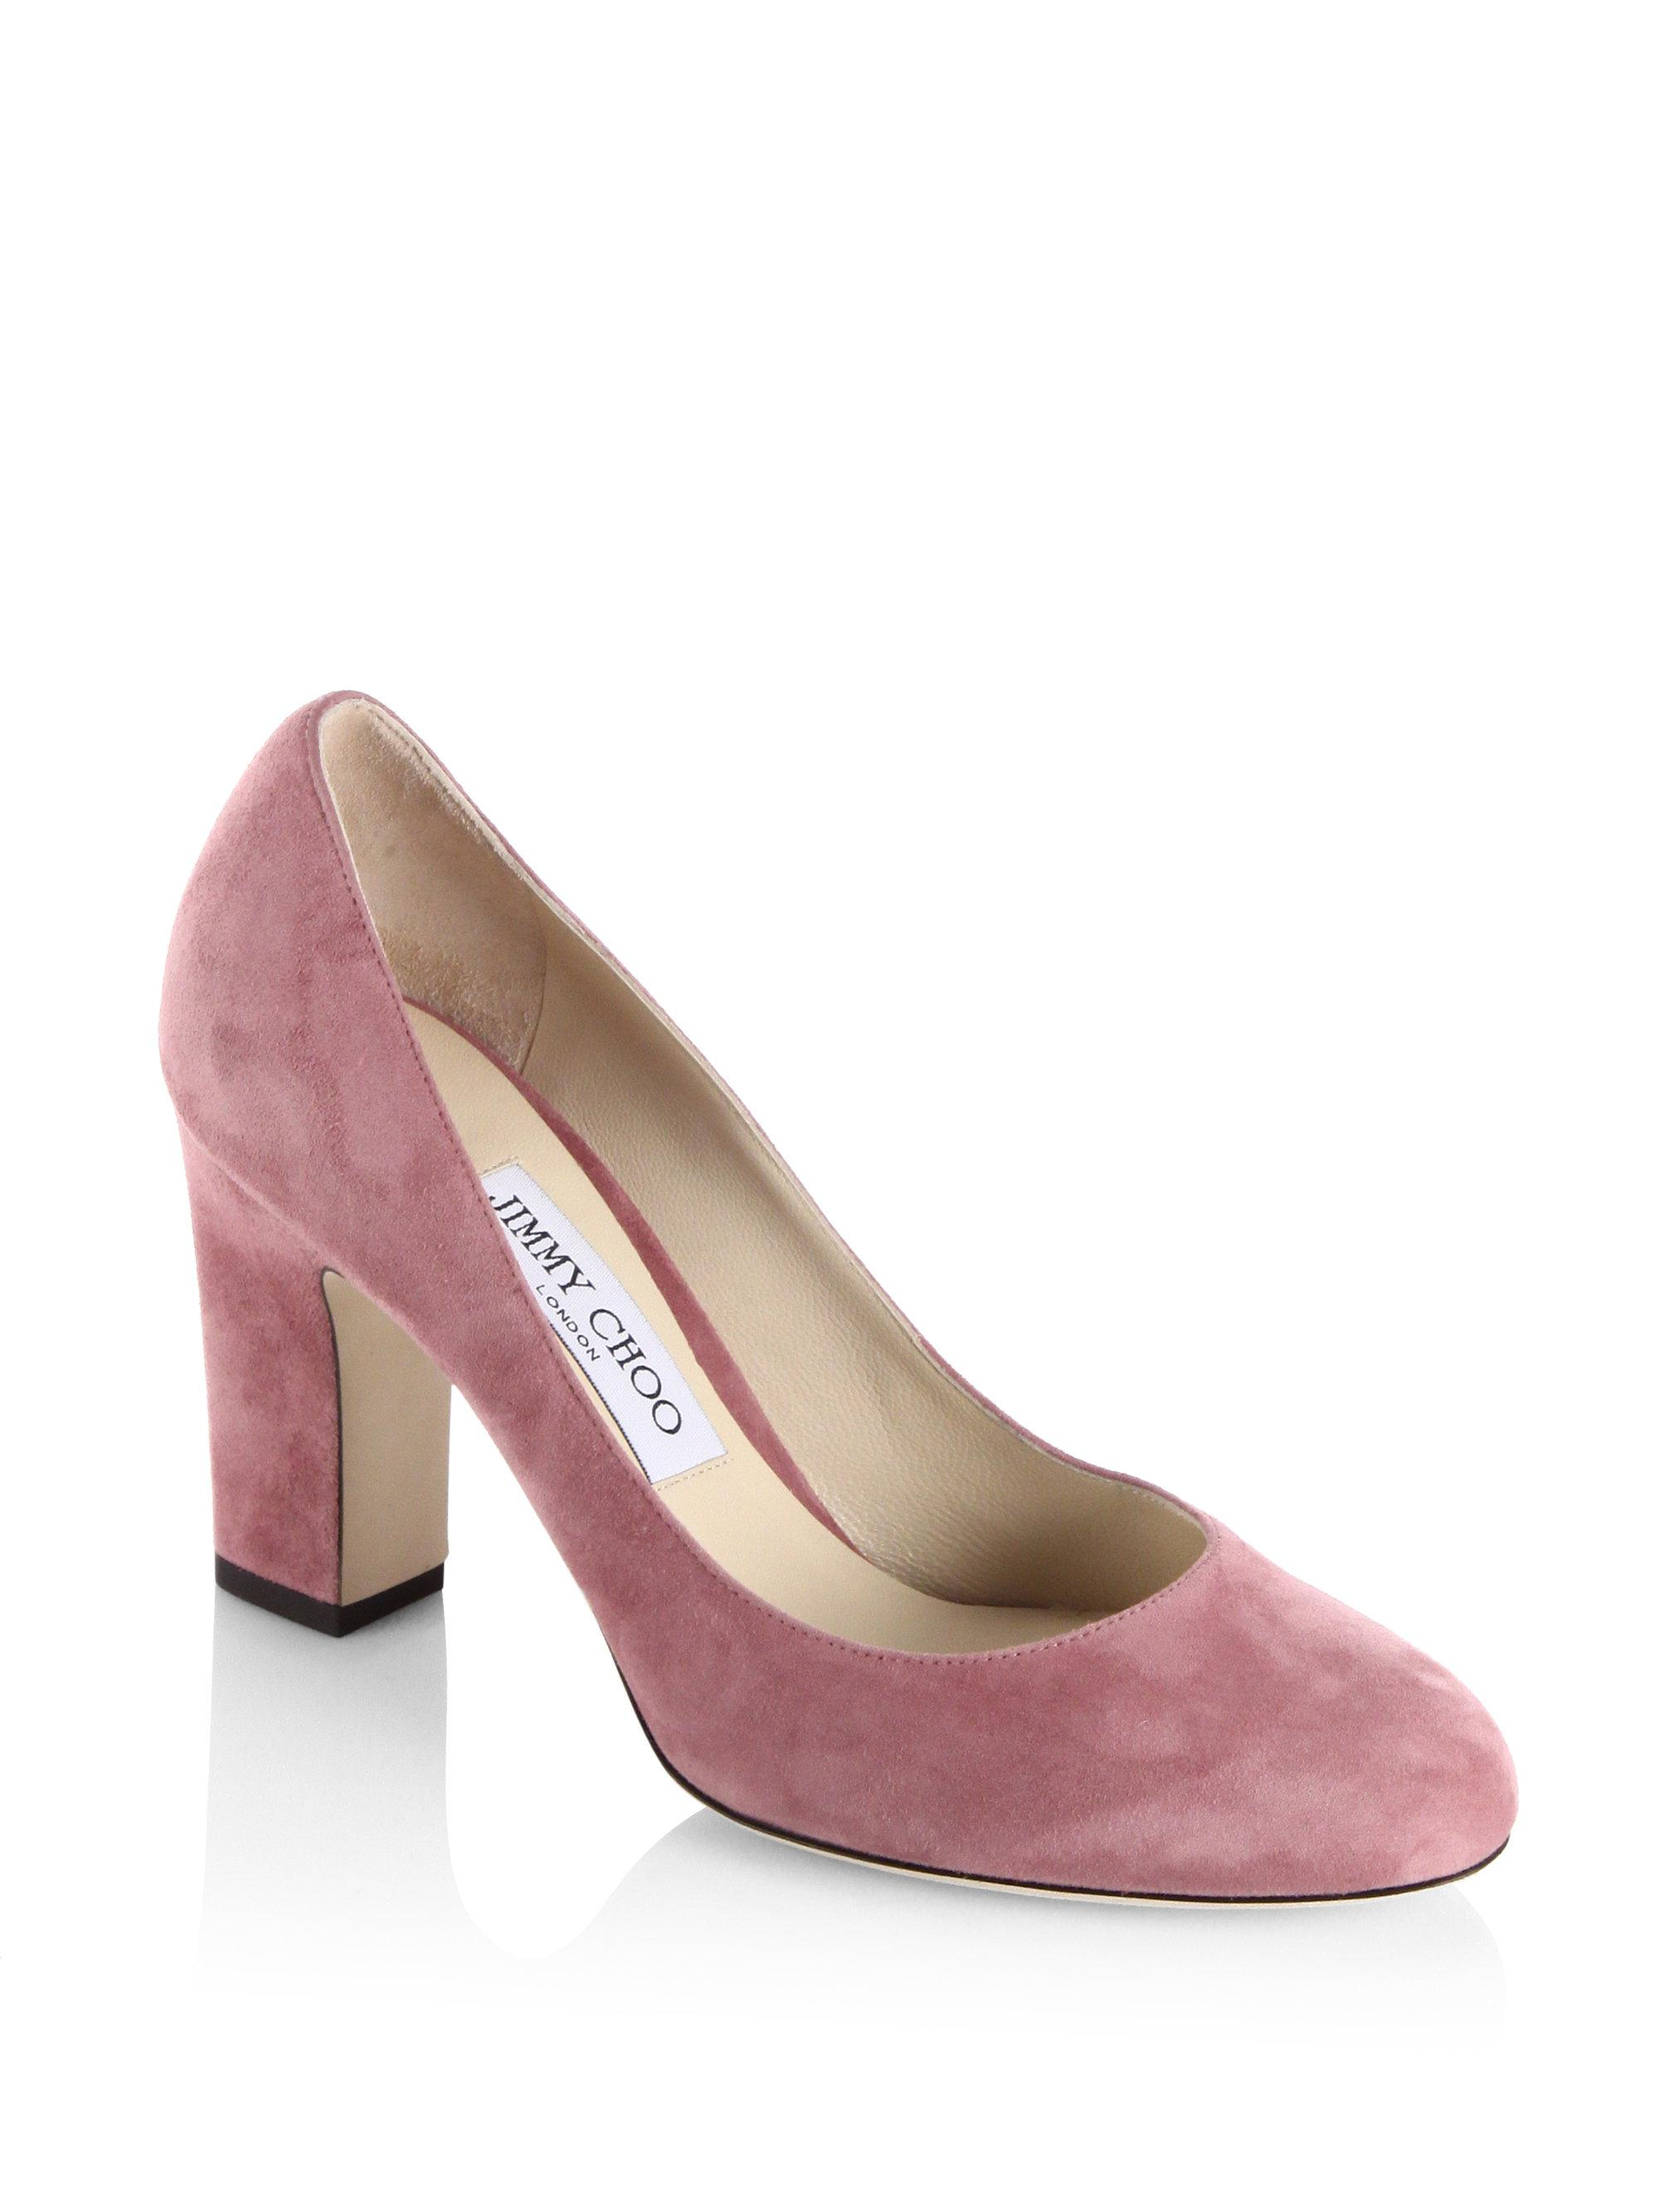 Hill pumps - Pink & Purple Jimmy Choo London M8lU3gO